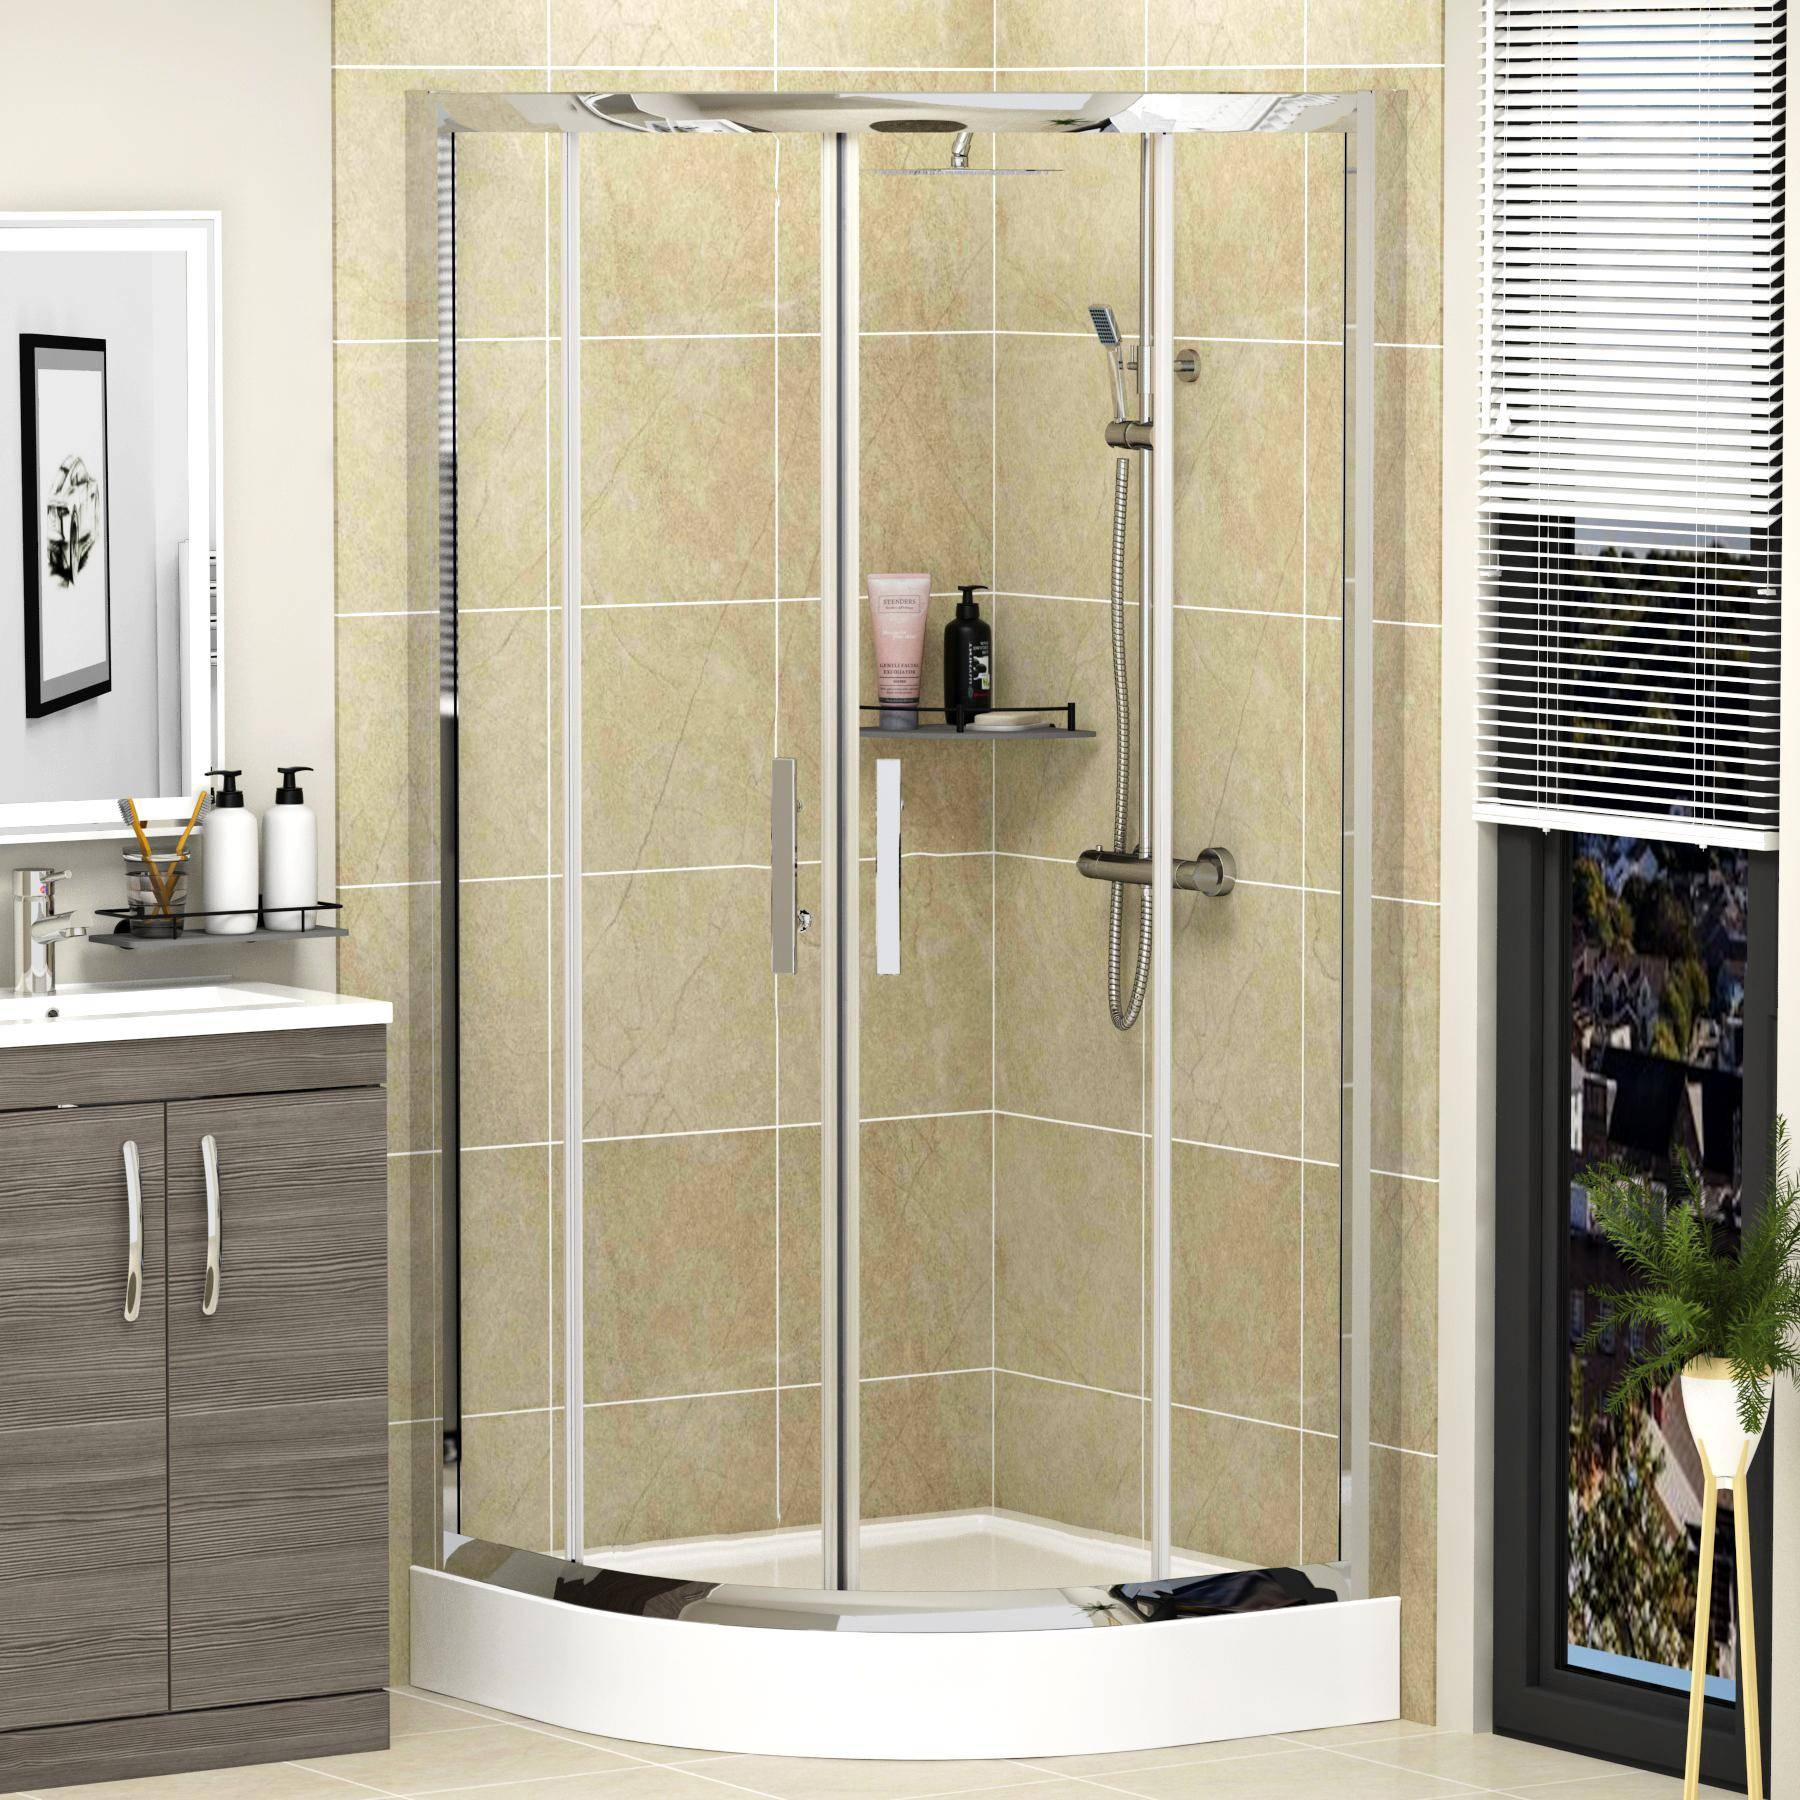 Royal Bathrooms Imperial 800mm Quadrant Shower Enclosure with High Tray - 6mm Double Door